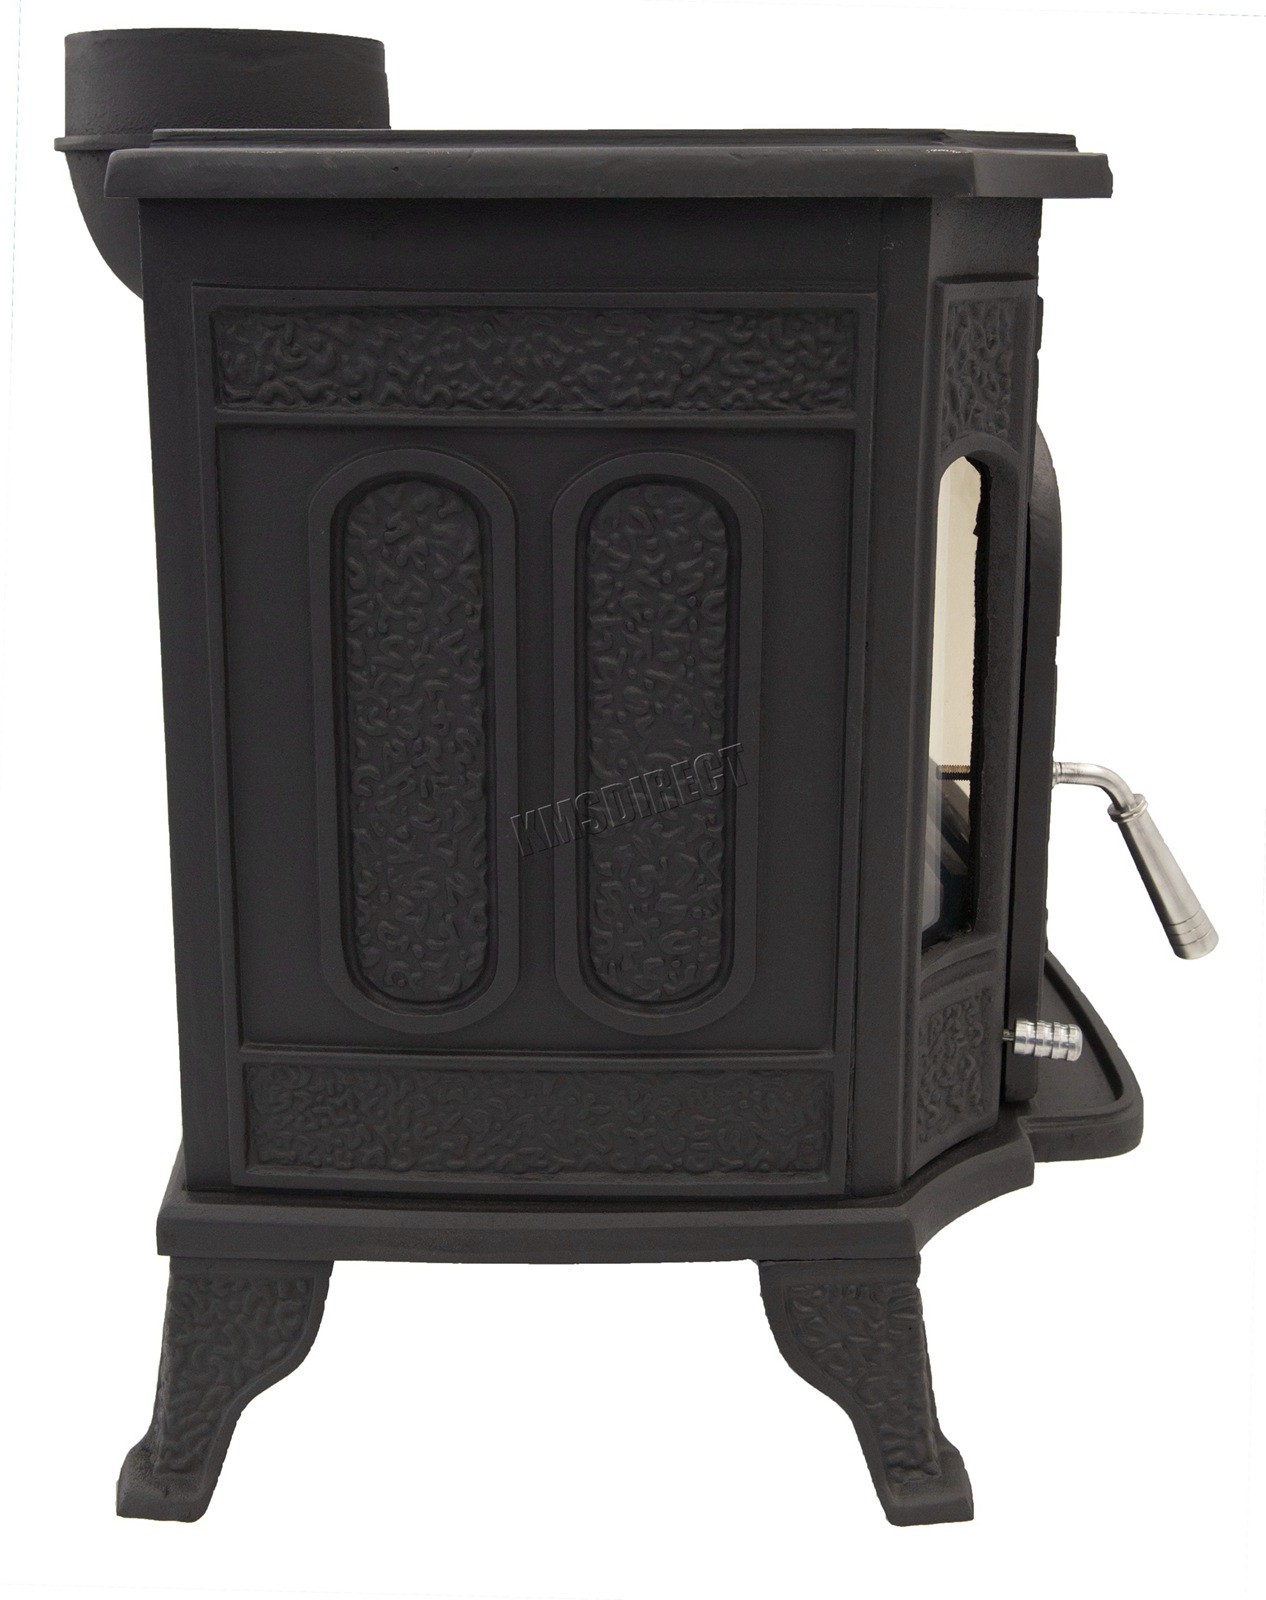 Woodburner Cast Iron Log Burner Multifuel Wood Burning